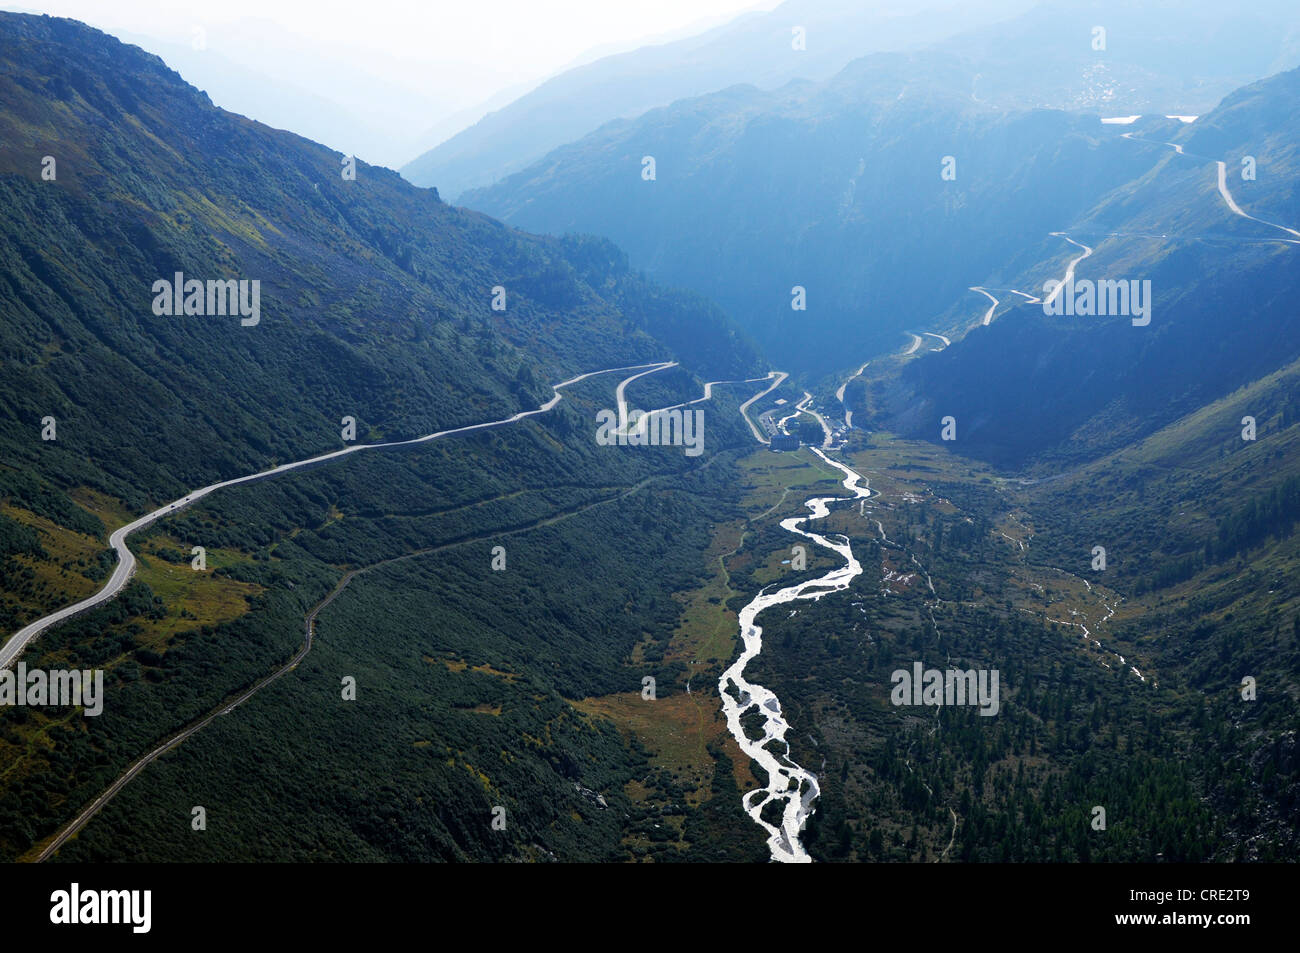 View from Gletsch over the mountain pass roads from Furka and Grimsel, Valais, Switzerland, Europe - Stock Image